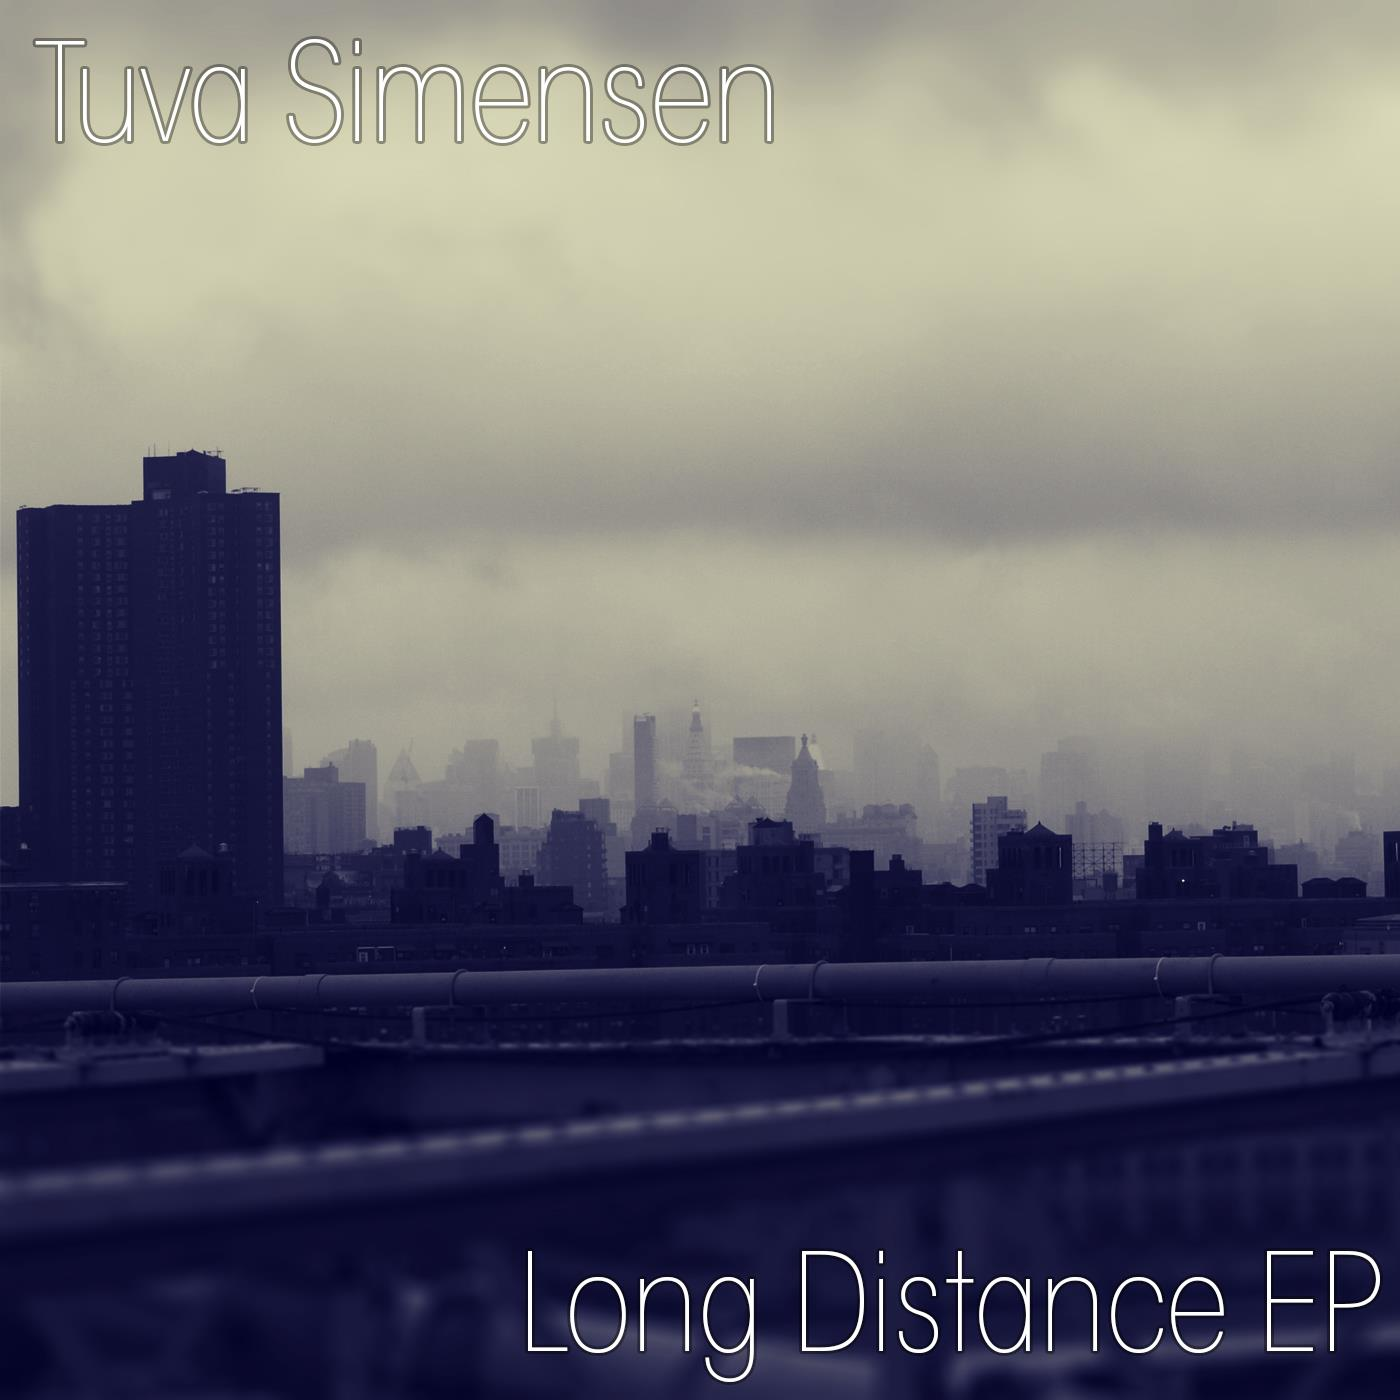 Long Distance EP